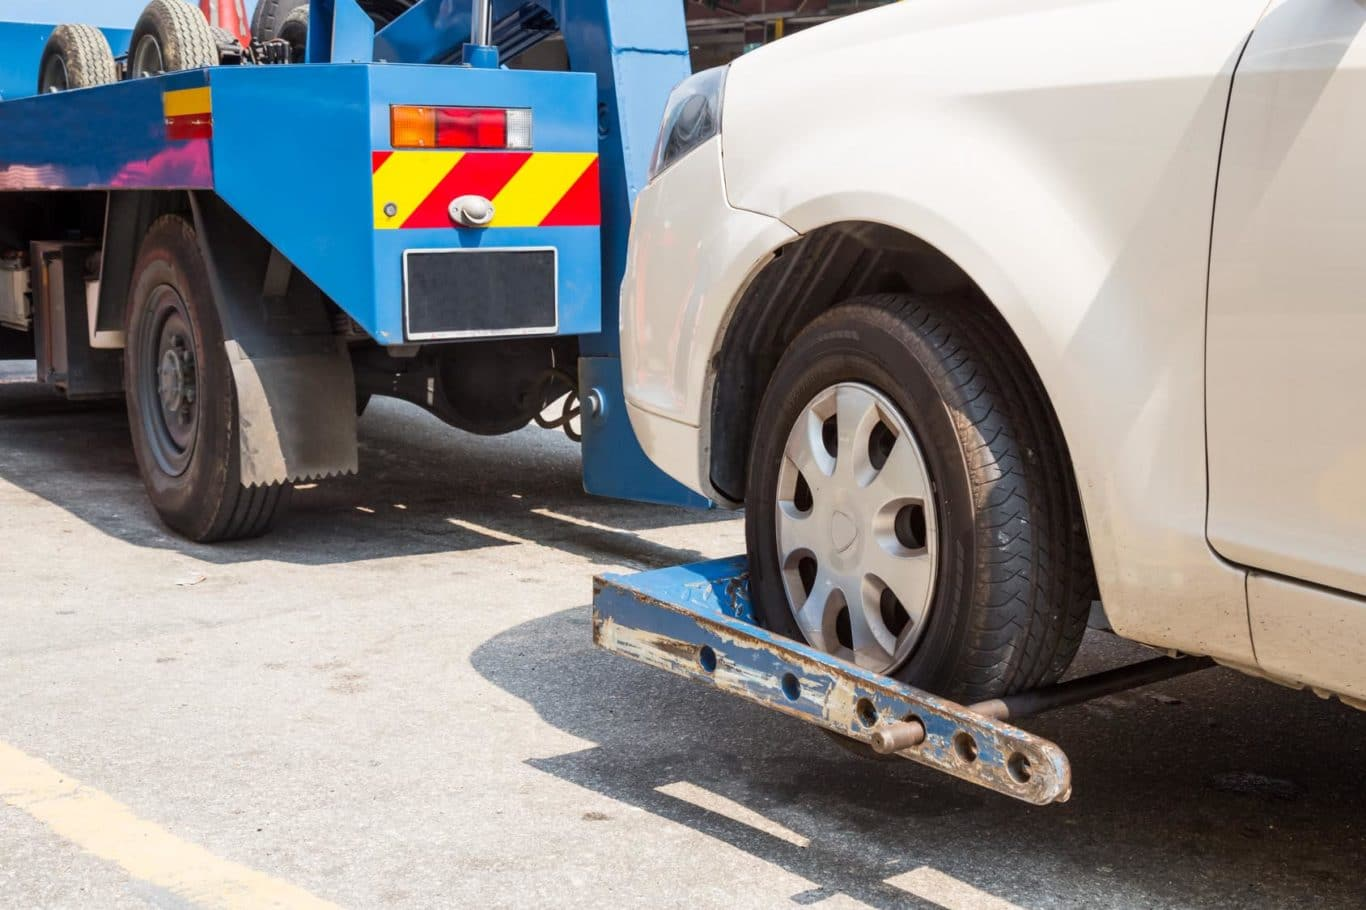 Oldbawn expert Breakdown Recovery services